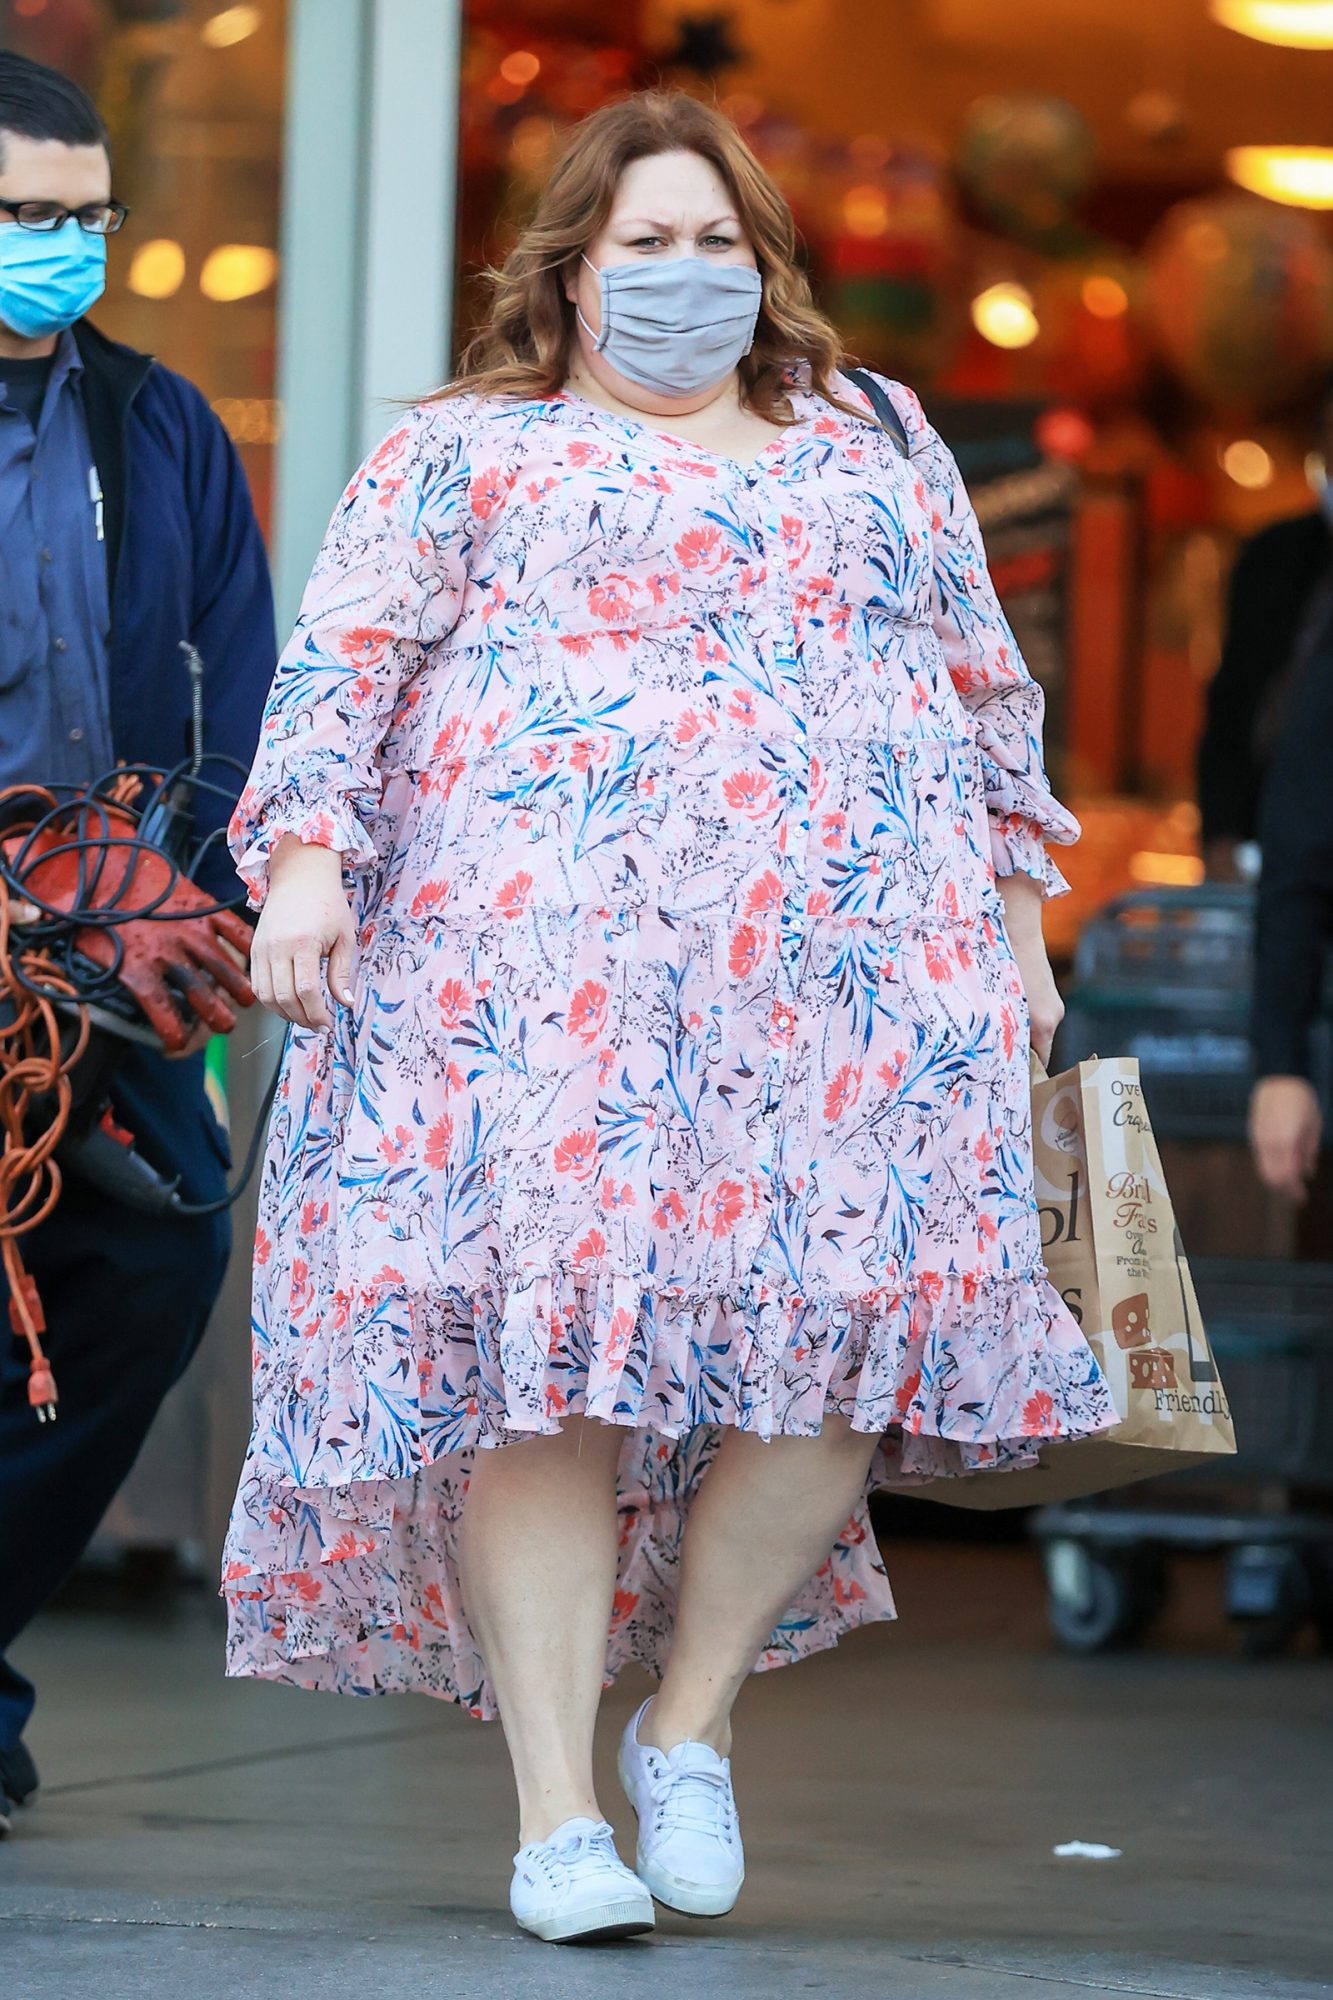 Chrissy Metz is all smiles while grocery shopping at Bristol Farms